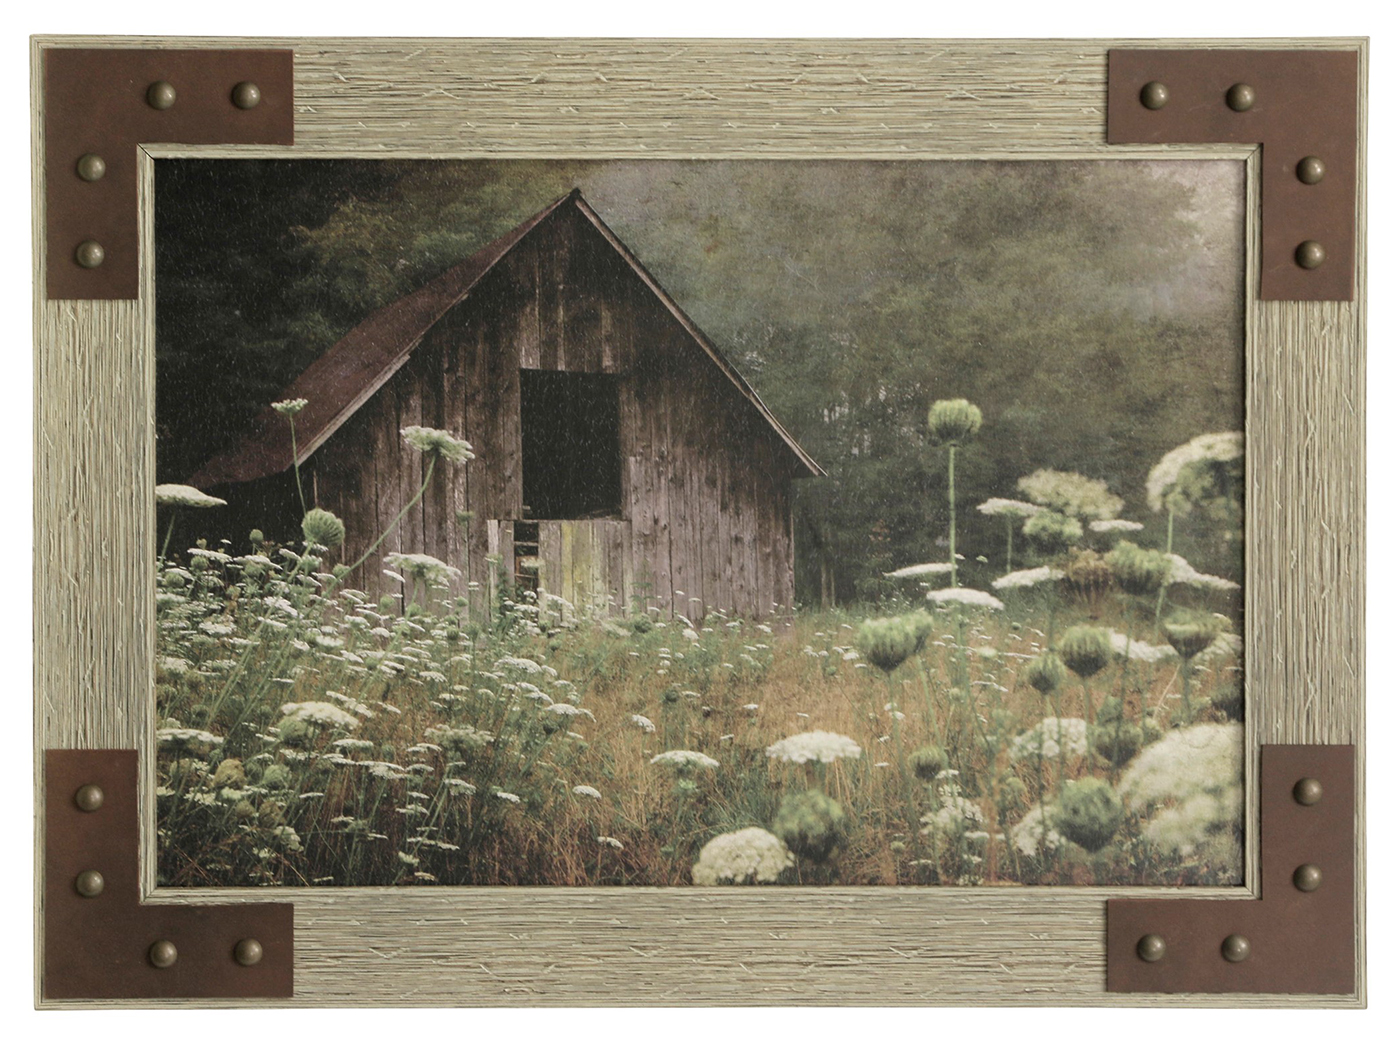 "Barn Amongst the Lace Framed Art 43""W x 31""H"